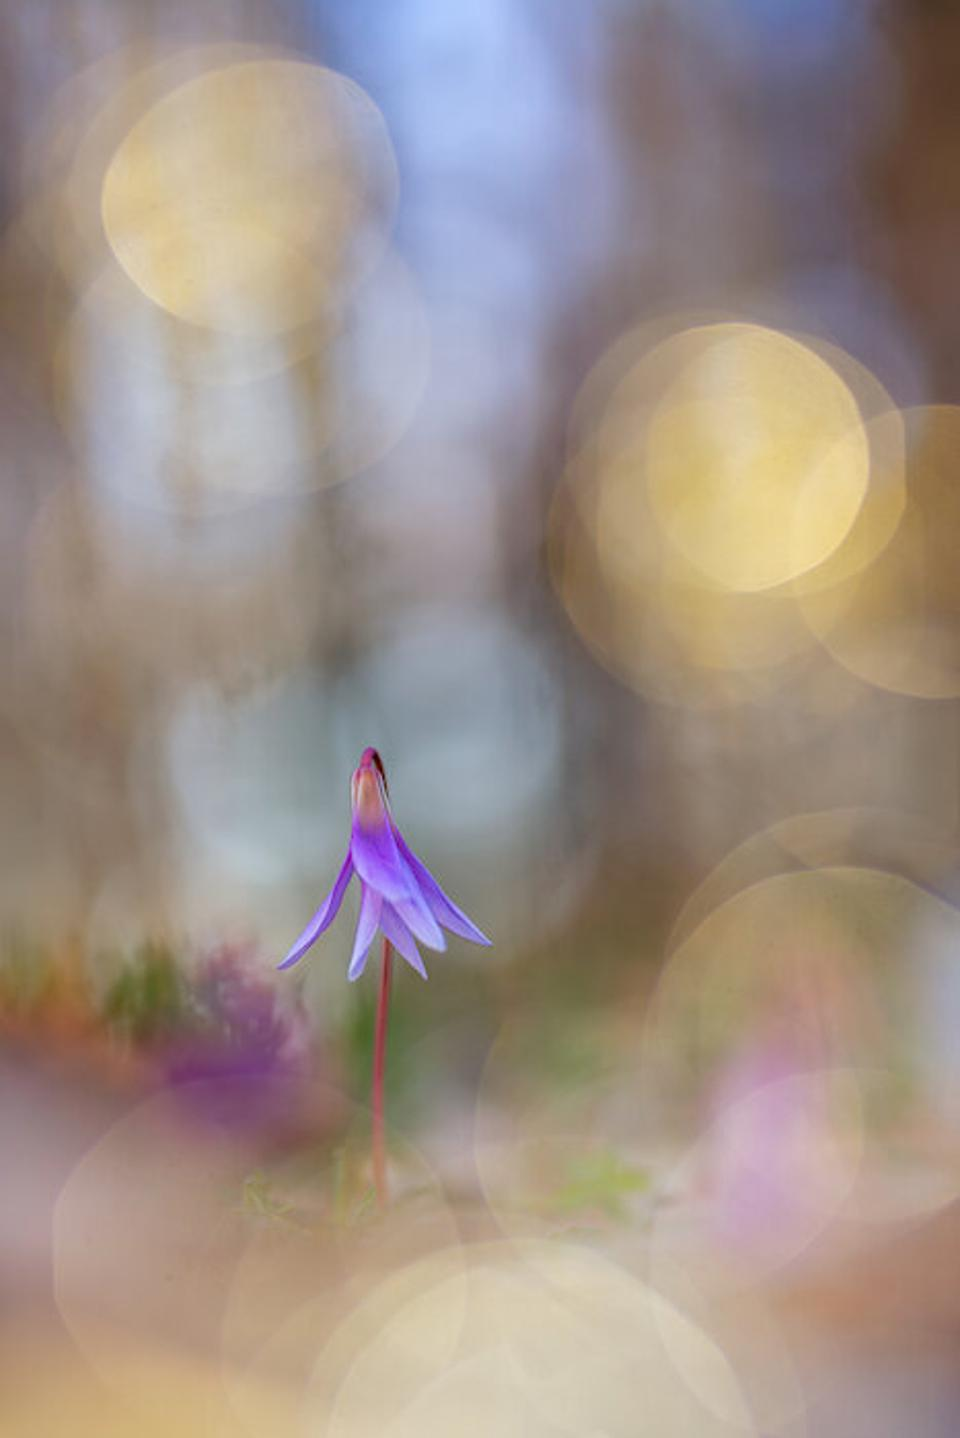 Close-Up Photographer of the Year: a purple delicate violet in an etereal background